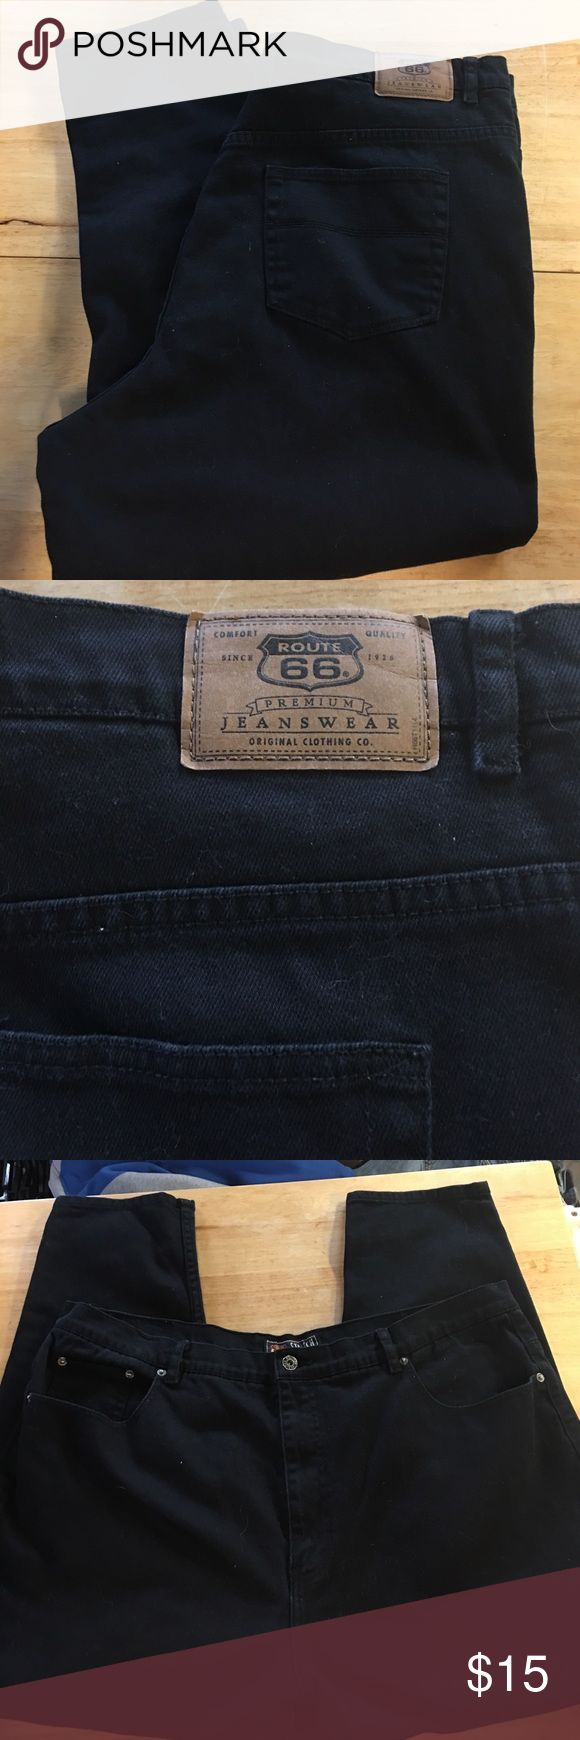 Route 66 Stretch Jeans 26P Route 66 Stretch Jeans 26Petite. Slim leg style in stretch jean material. Back pockets and zip/button closure. In excellent condition! Route 66 Jeans Straight Leg